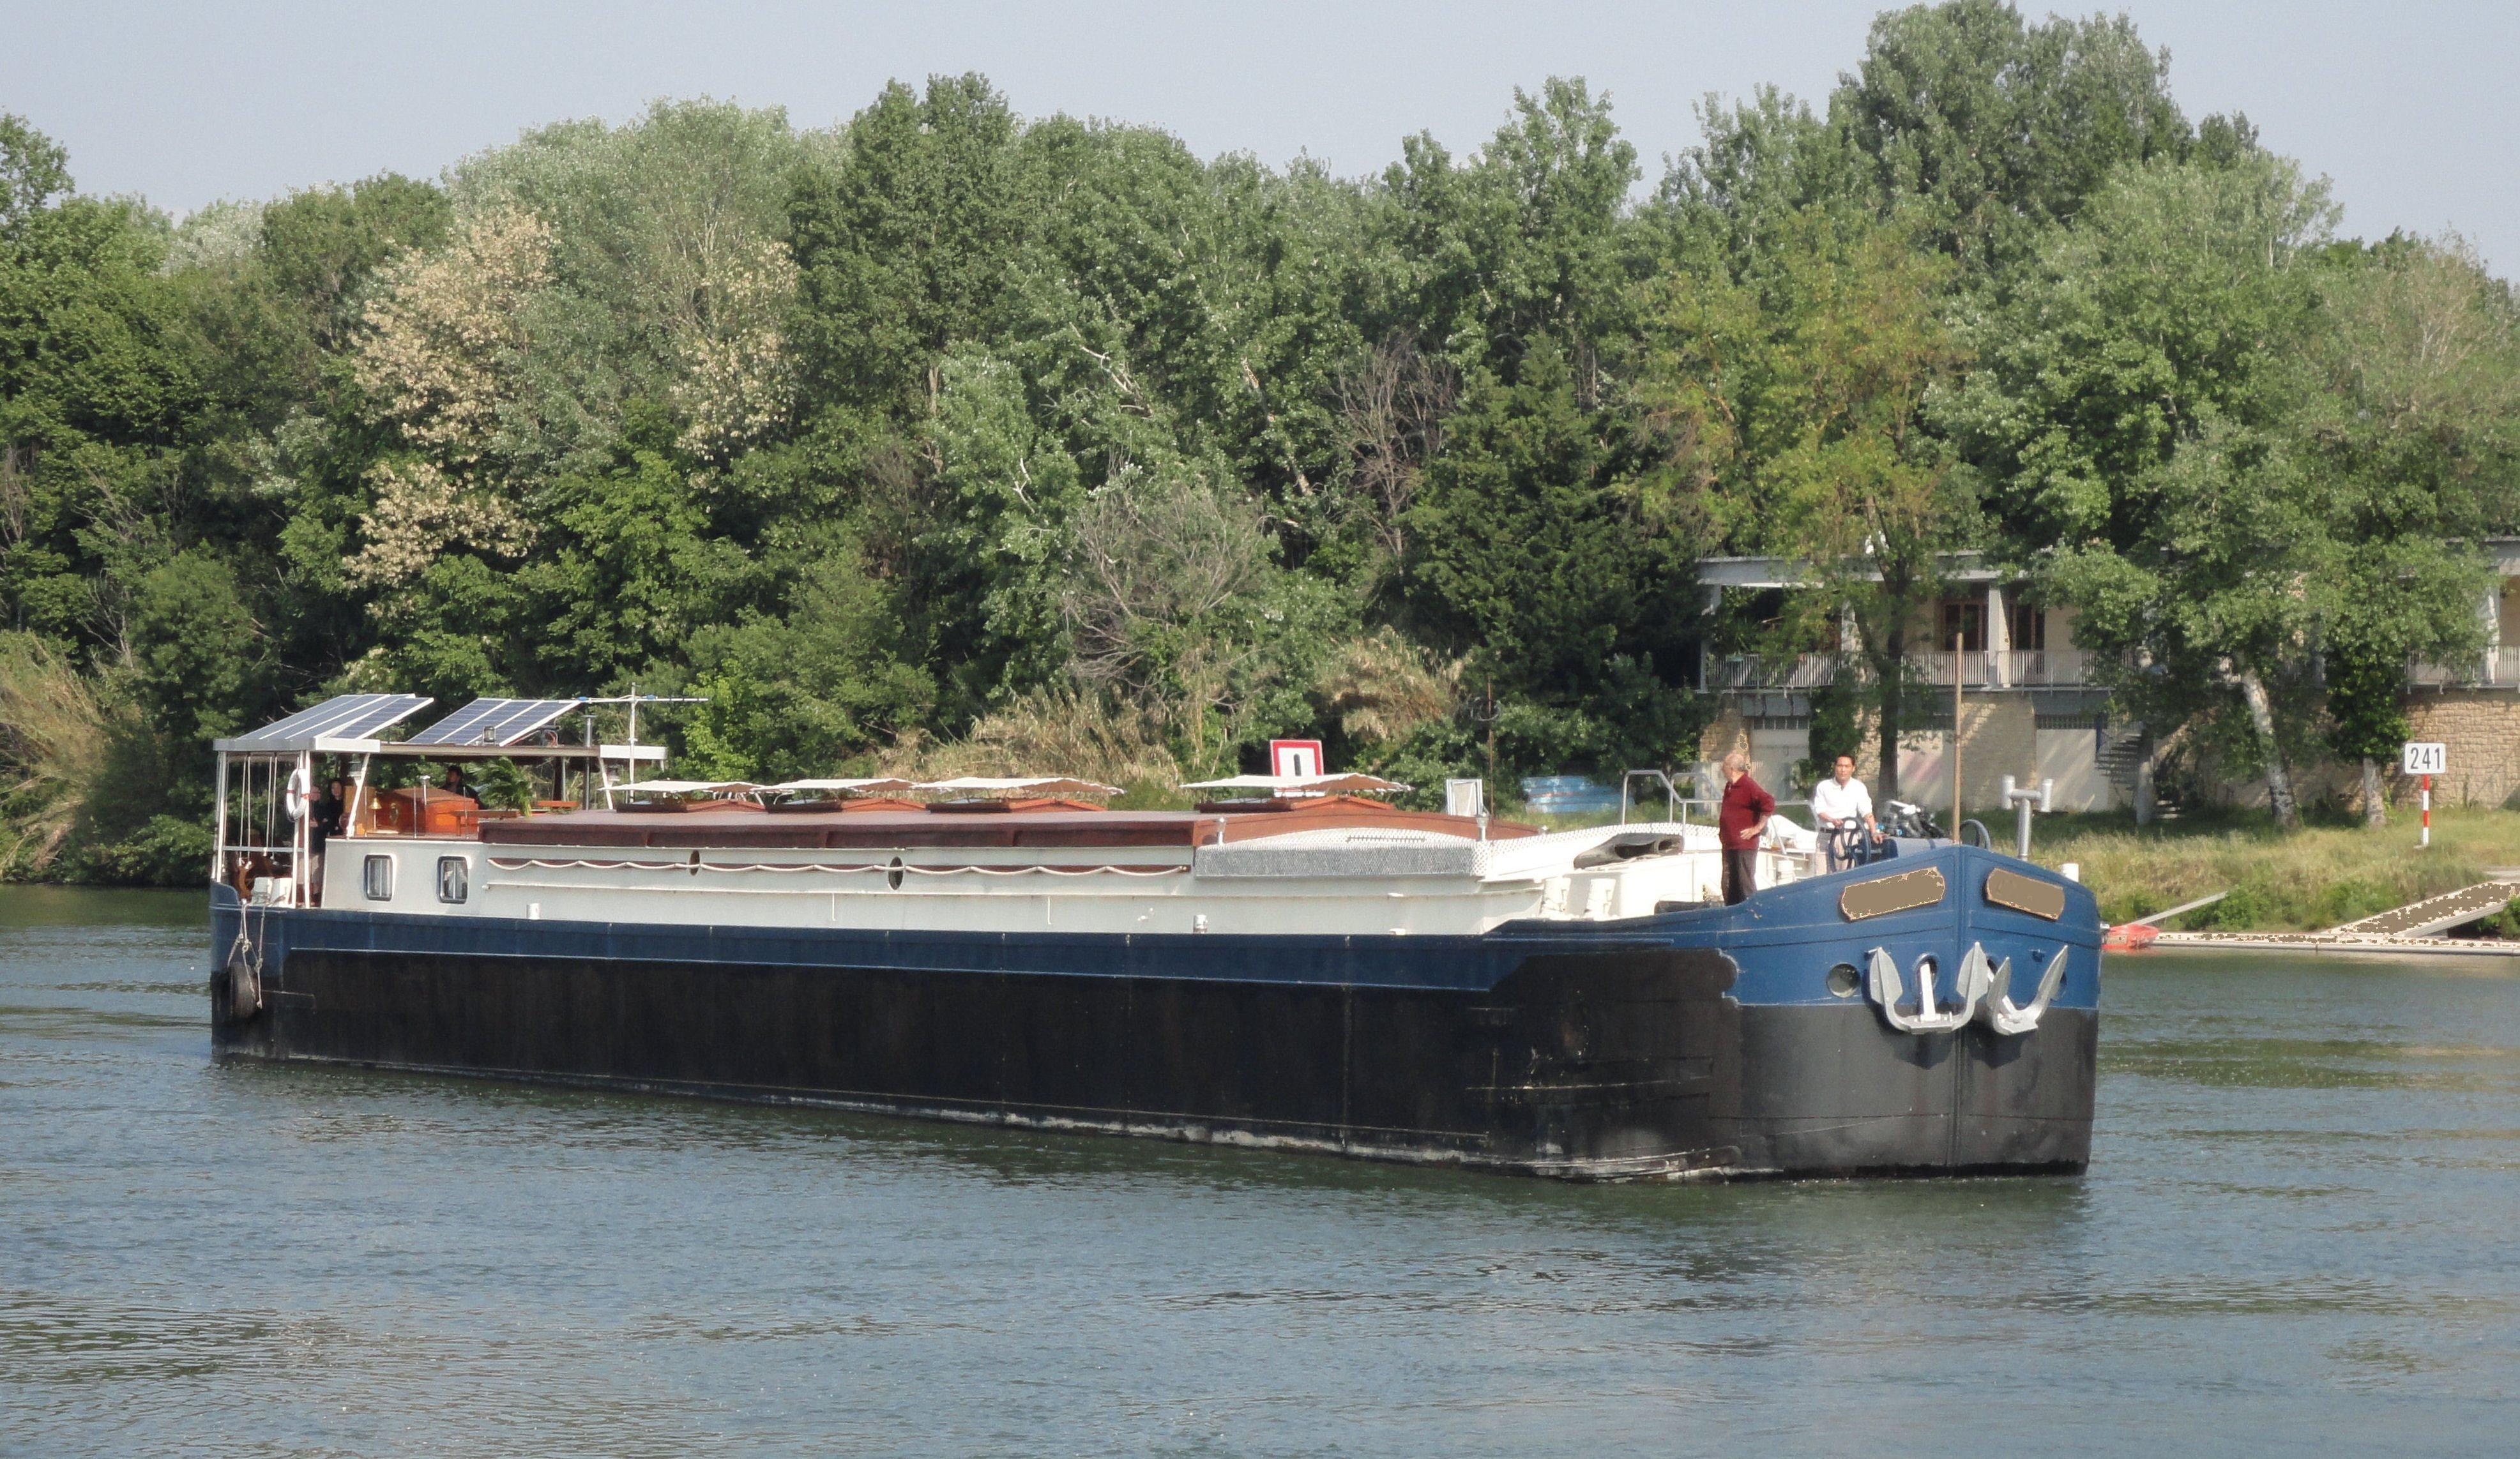 1950 Strasbourg Peniche Luxury French Canal Barge Power